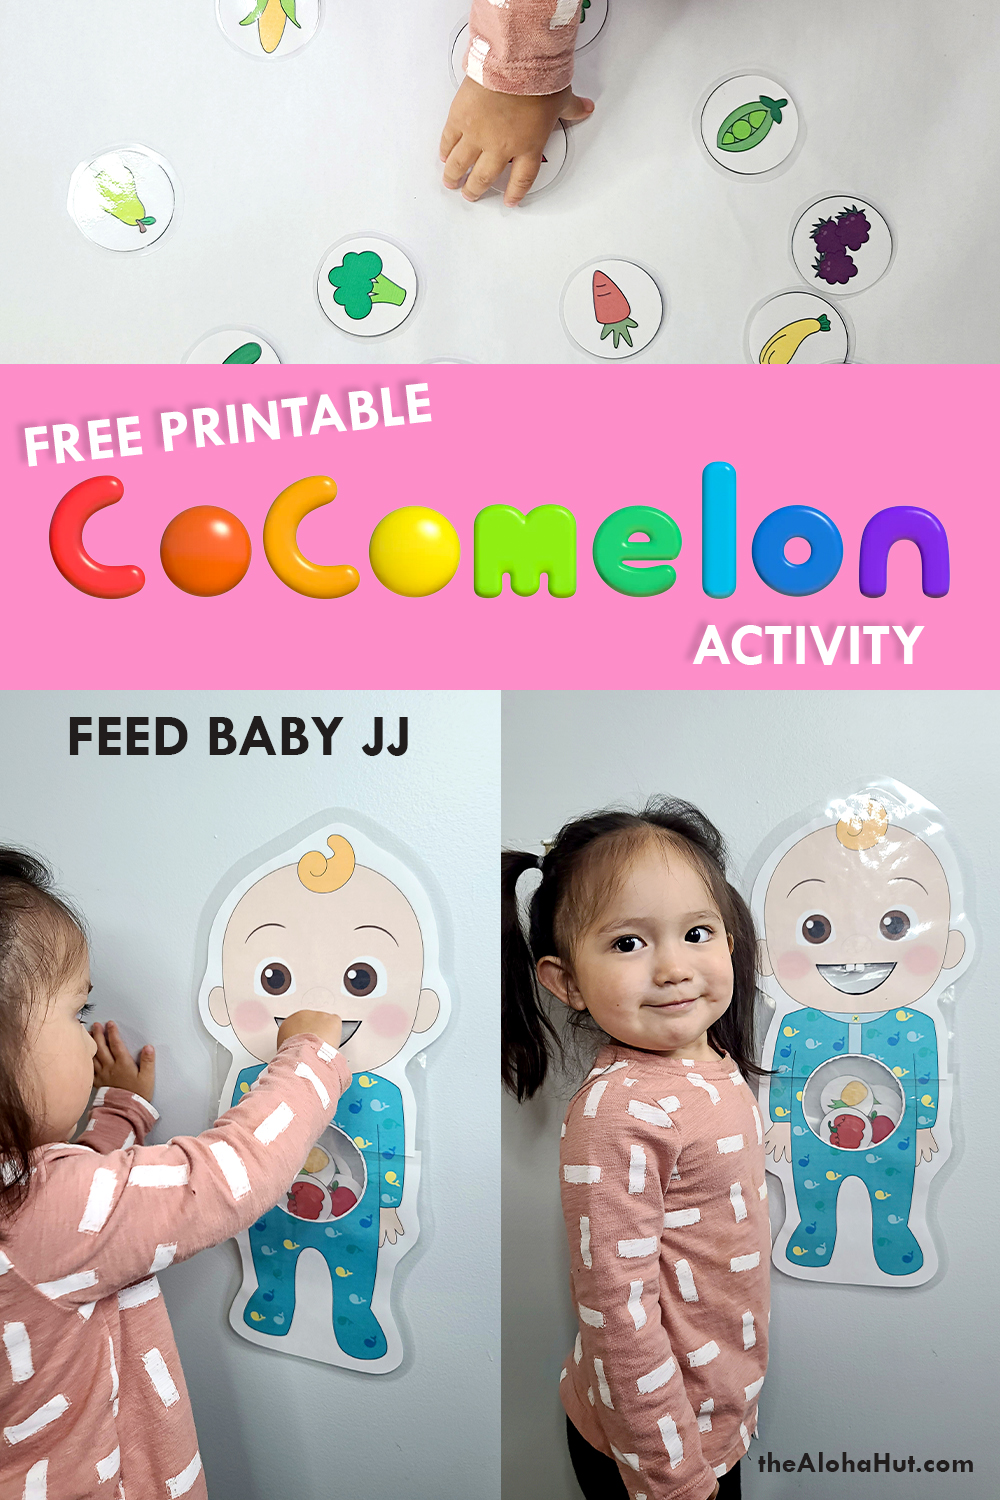 cocomelon feed baby JJ activity free printable 3 by the Aloha Hut